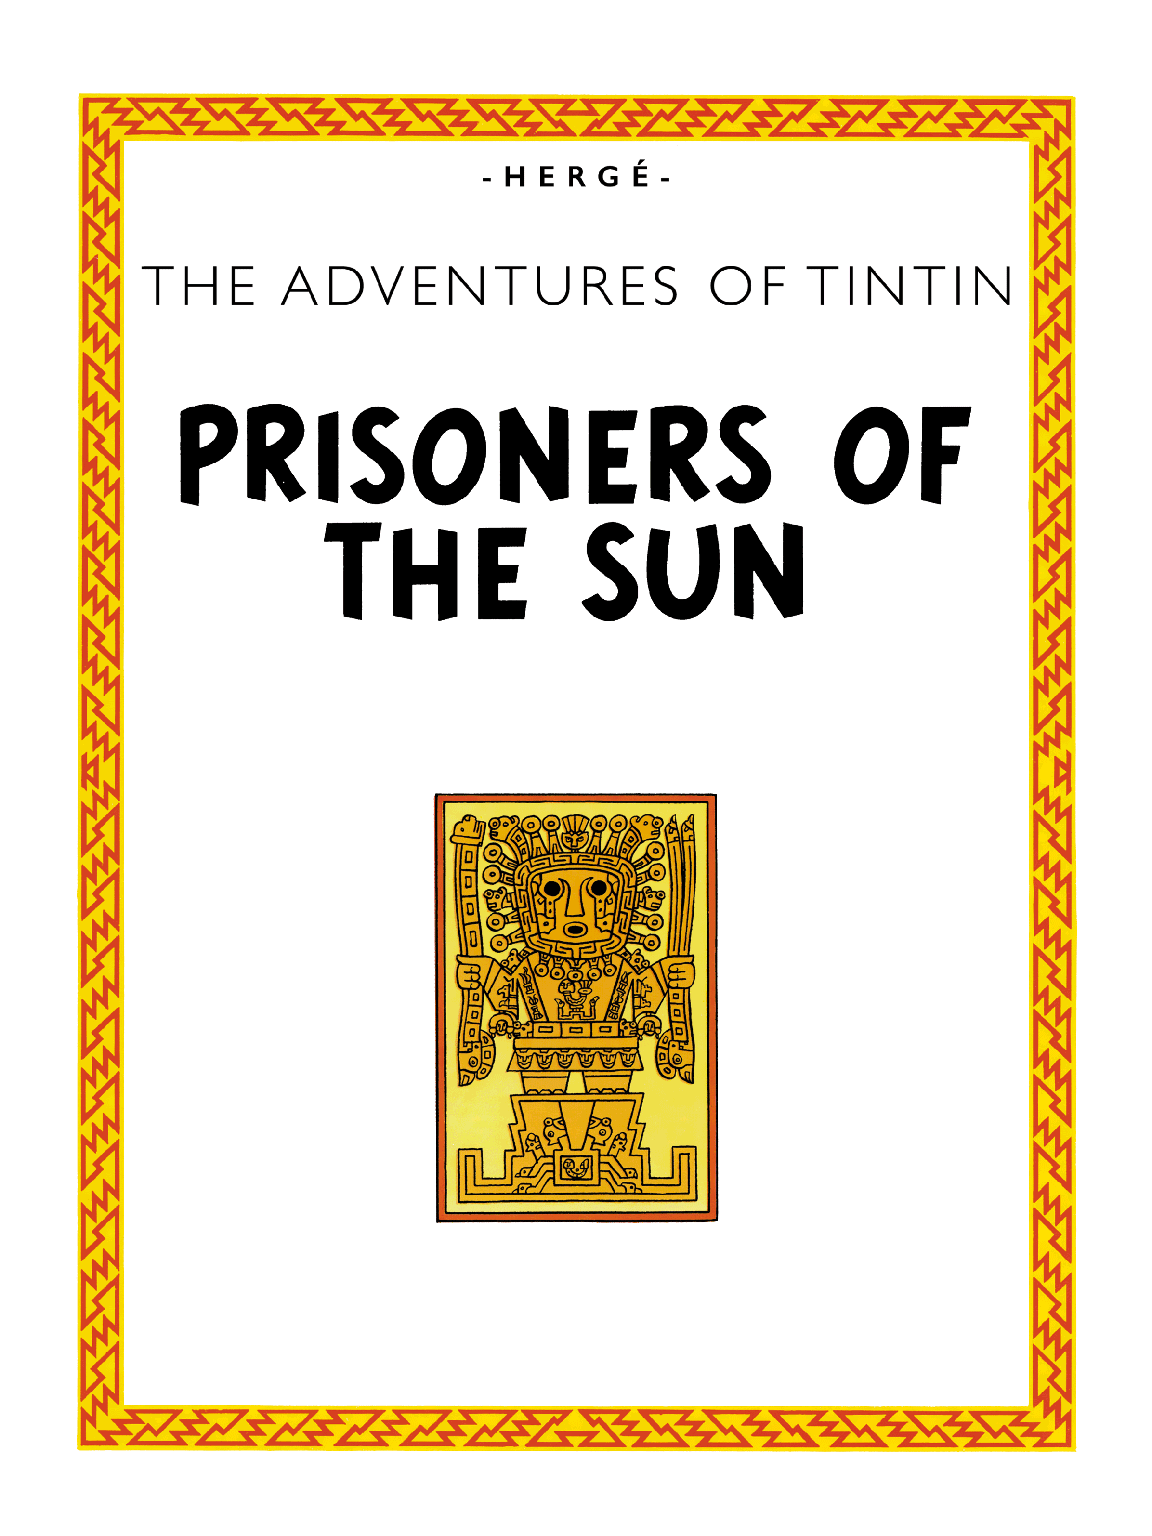 Prisoners of the Sun - Title page